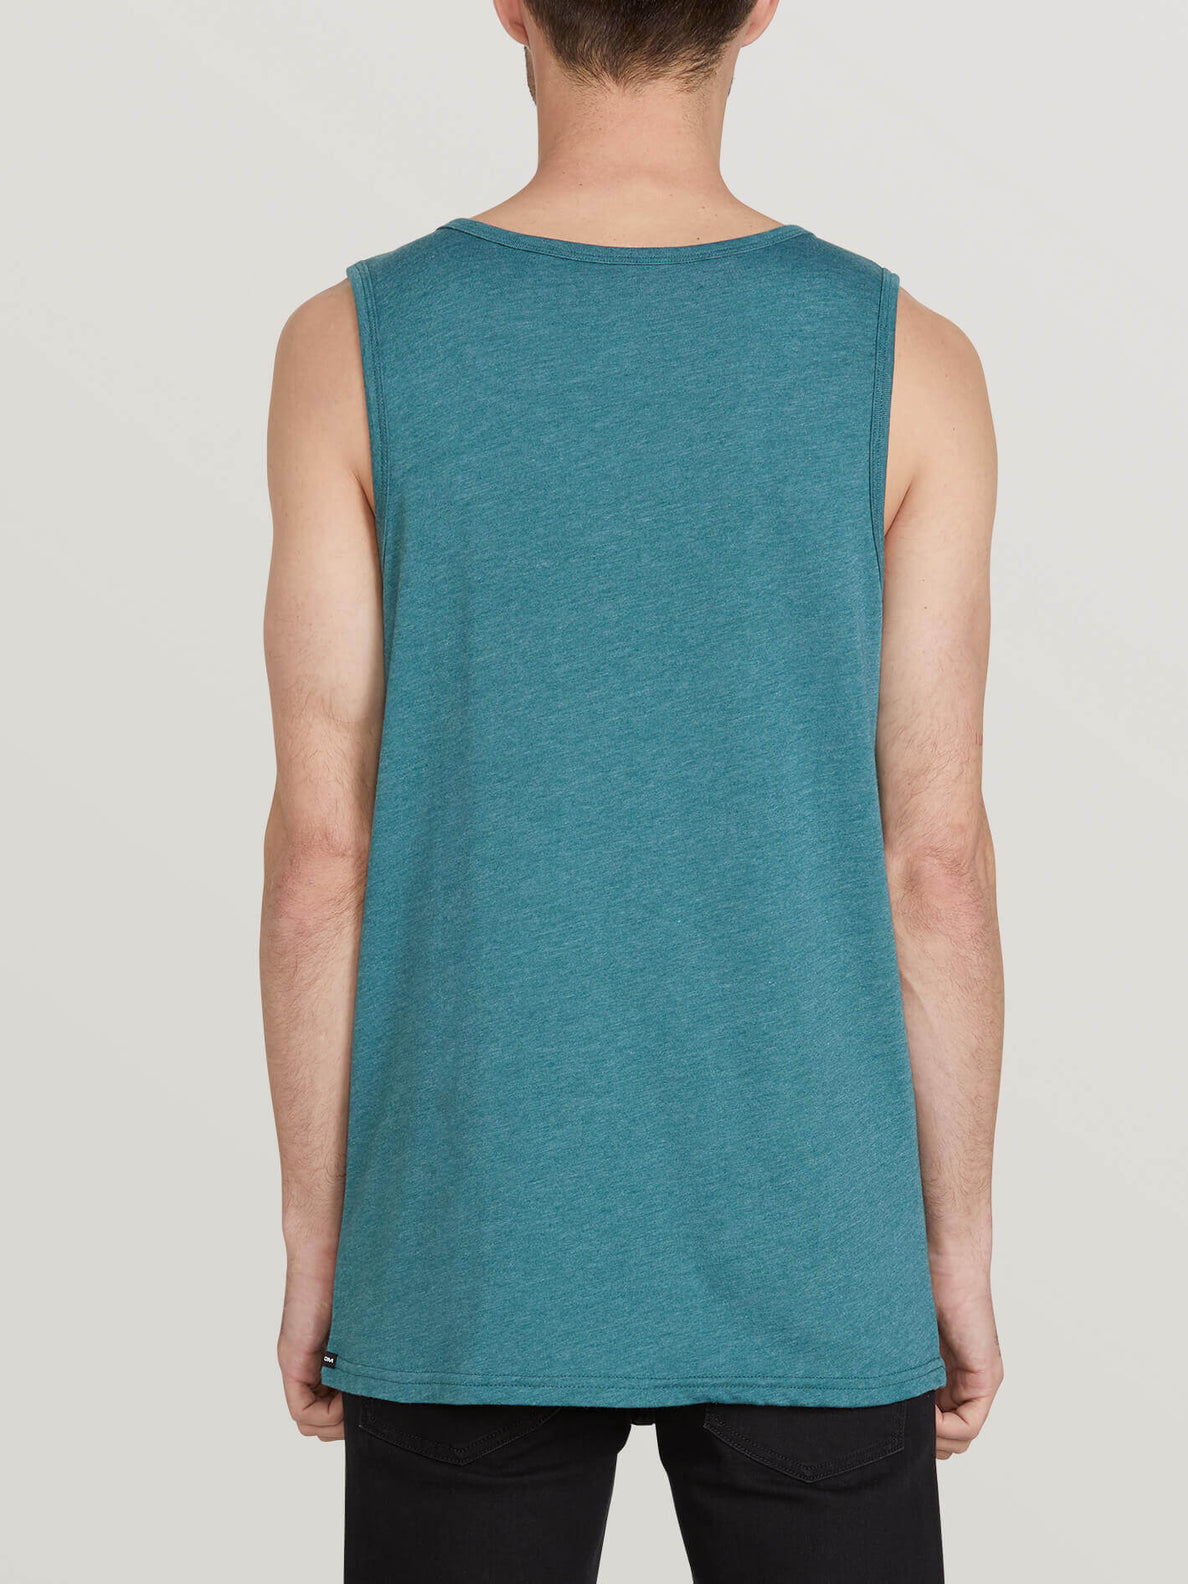 Solid Heather Tank - Mediterranean